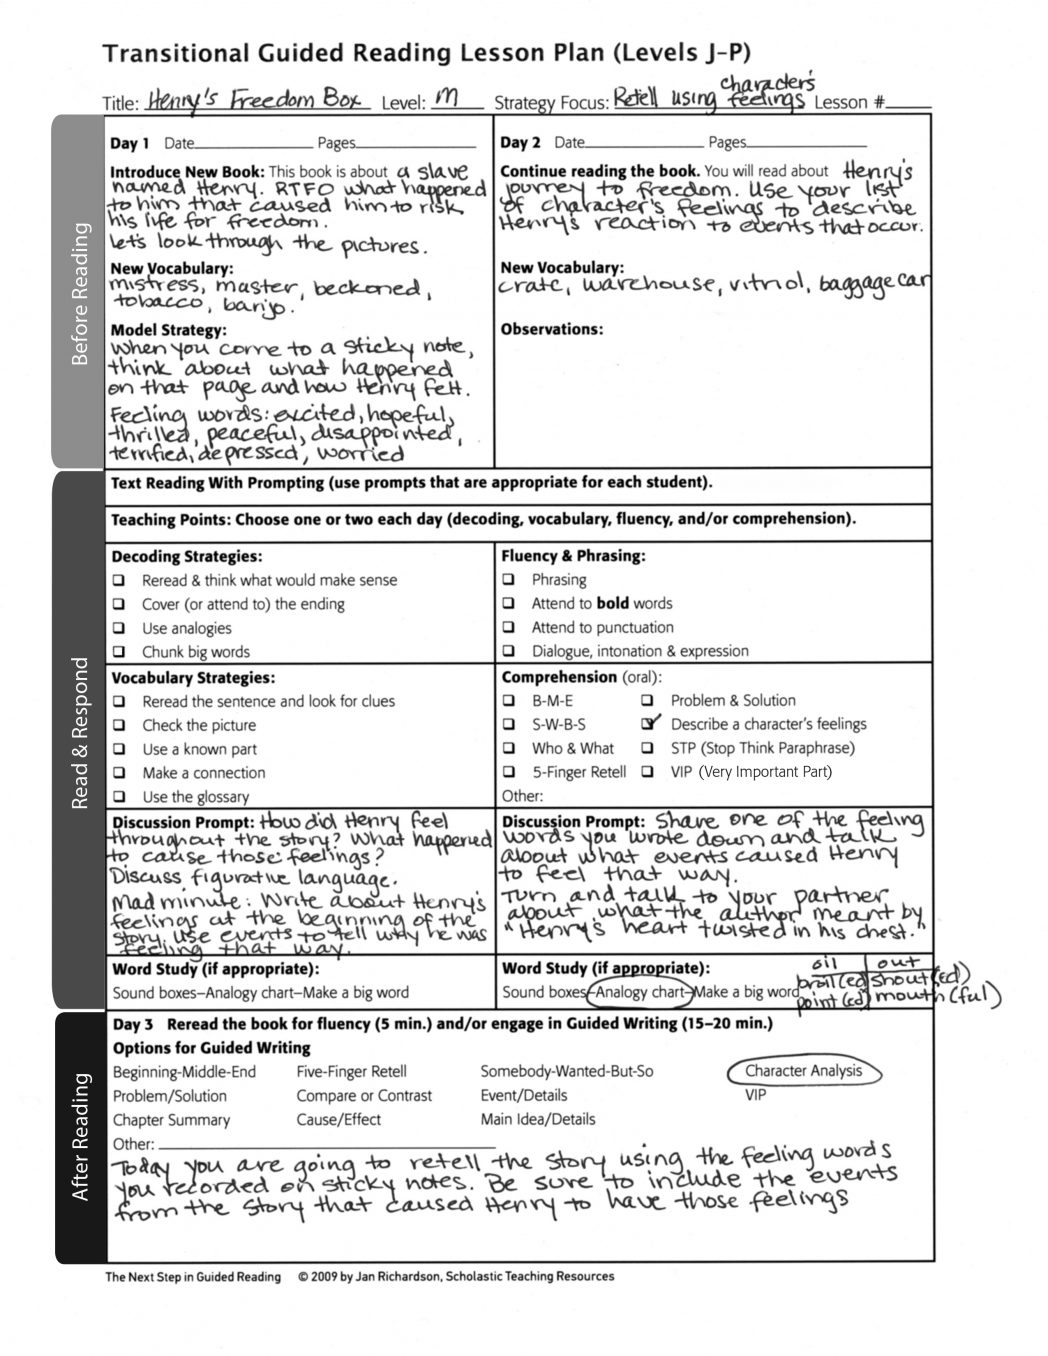 012 Define Happiness Essay Clever Titles How To Write Good Definition Outline Fi4 Handout Guided Reading Videos Transitional Lesson Plan M Comp 1048x1356 Imposing Title Full